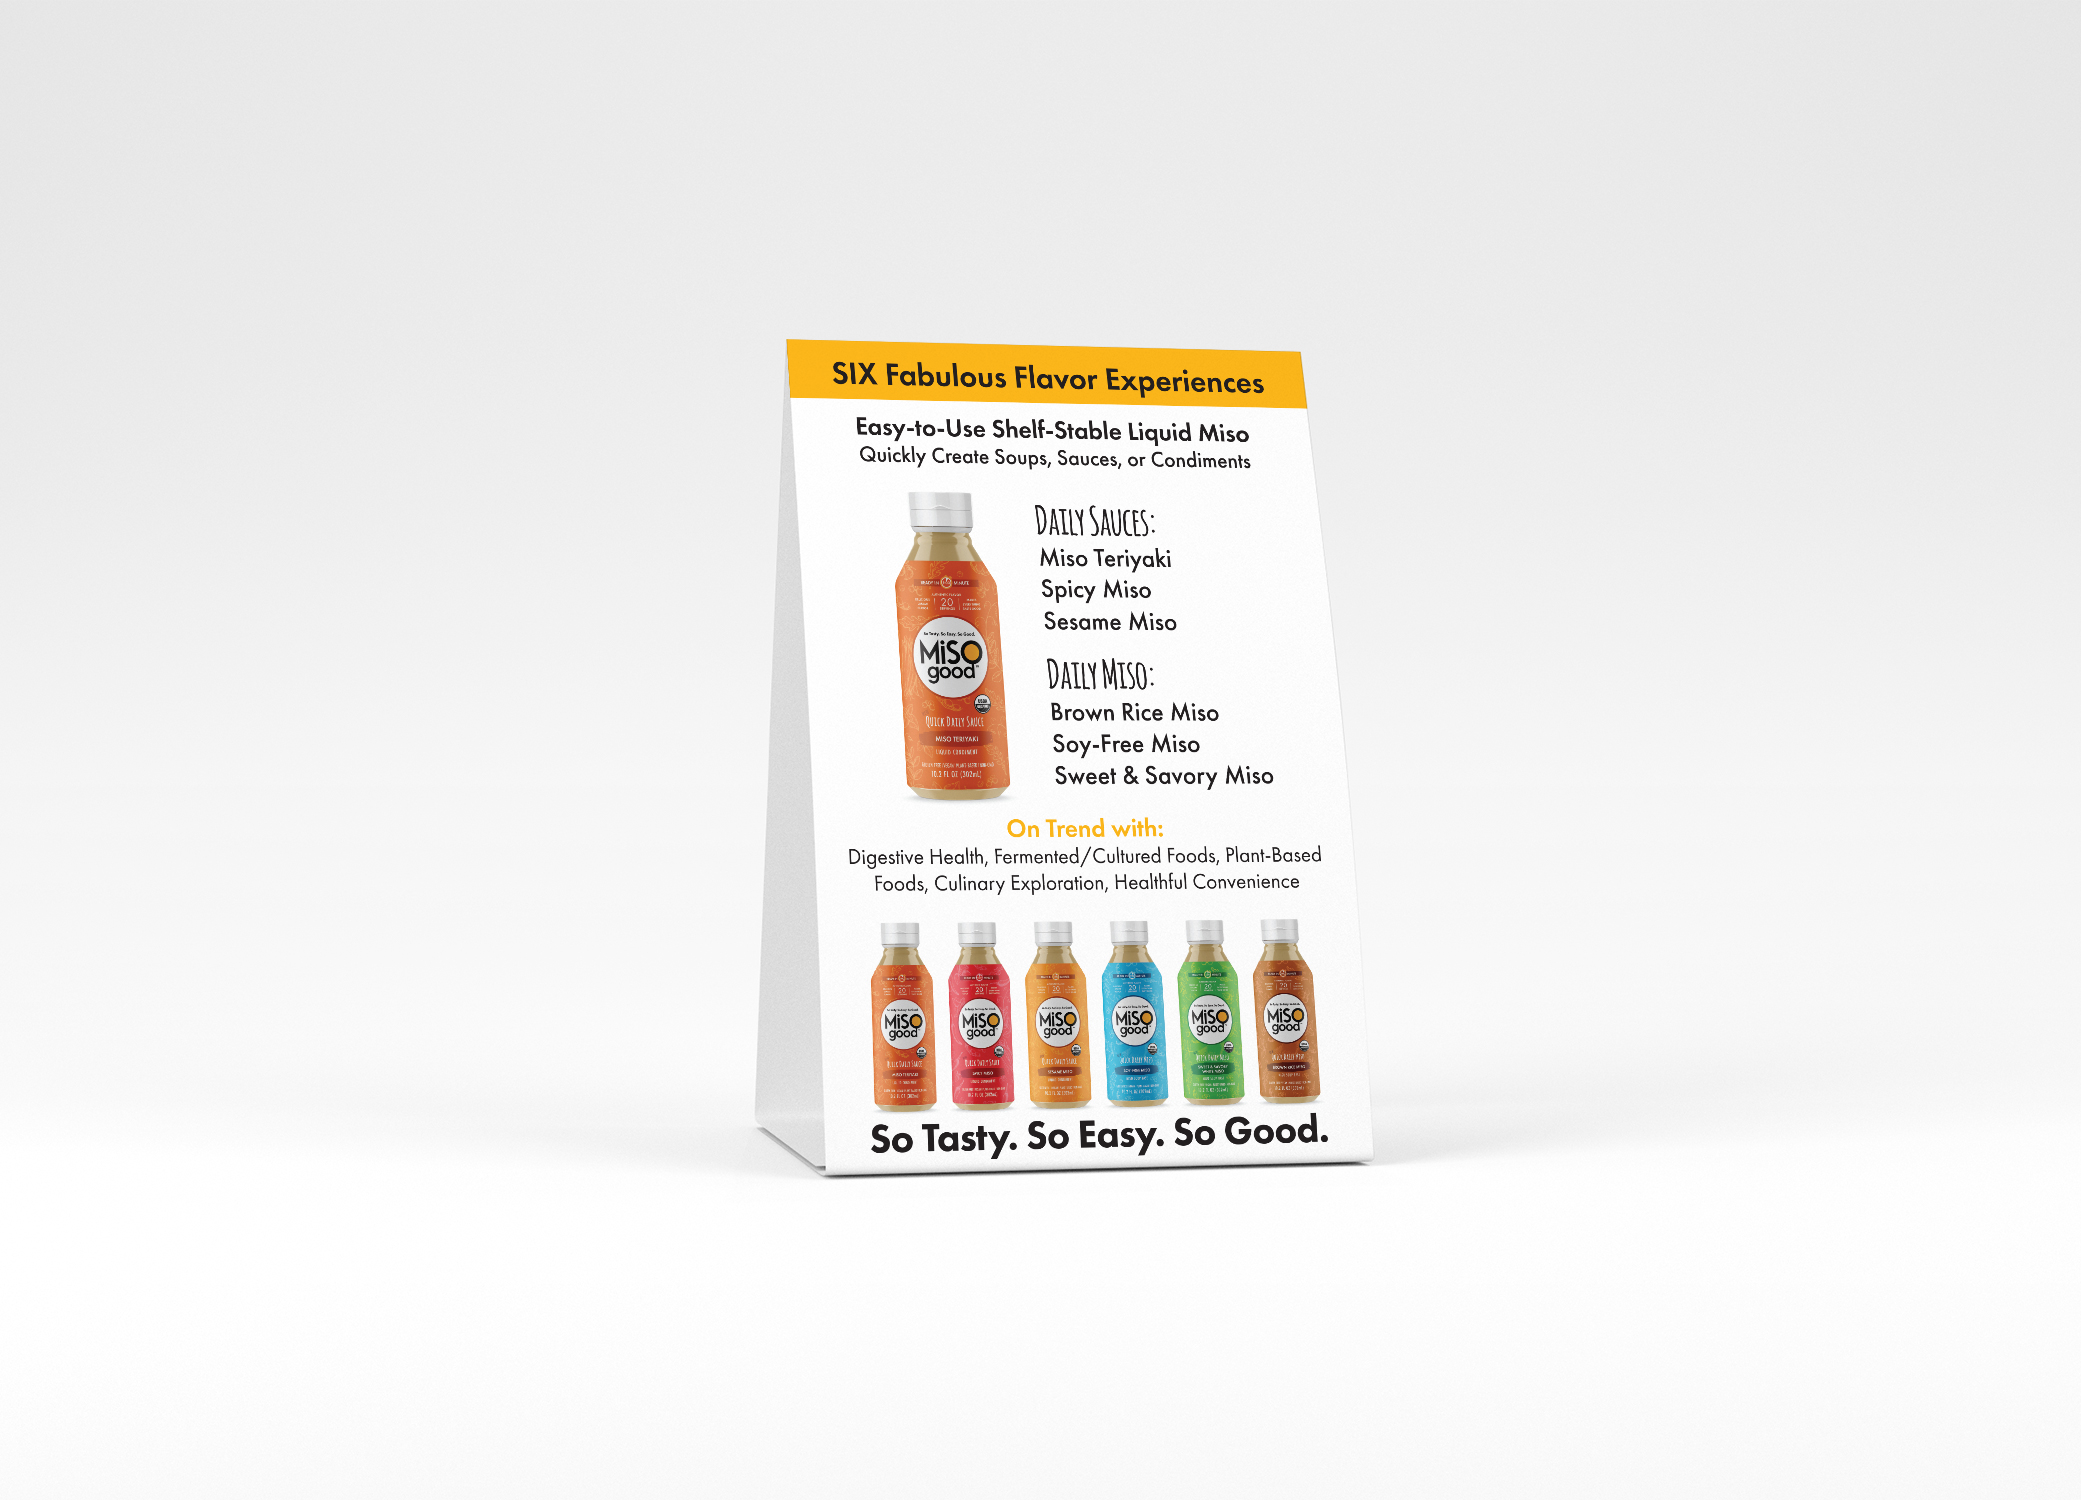 MiSOgood colorful table top design showing flavor combinations of the product and tagline, So Tasty, So Easy, So Good.